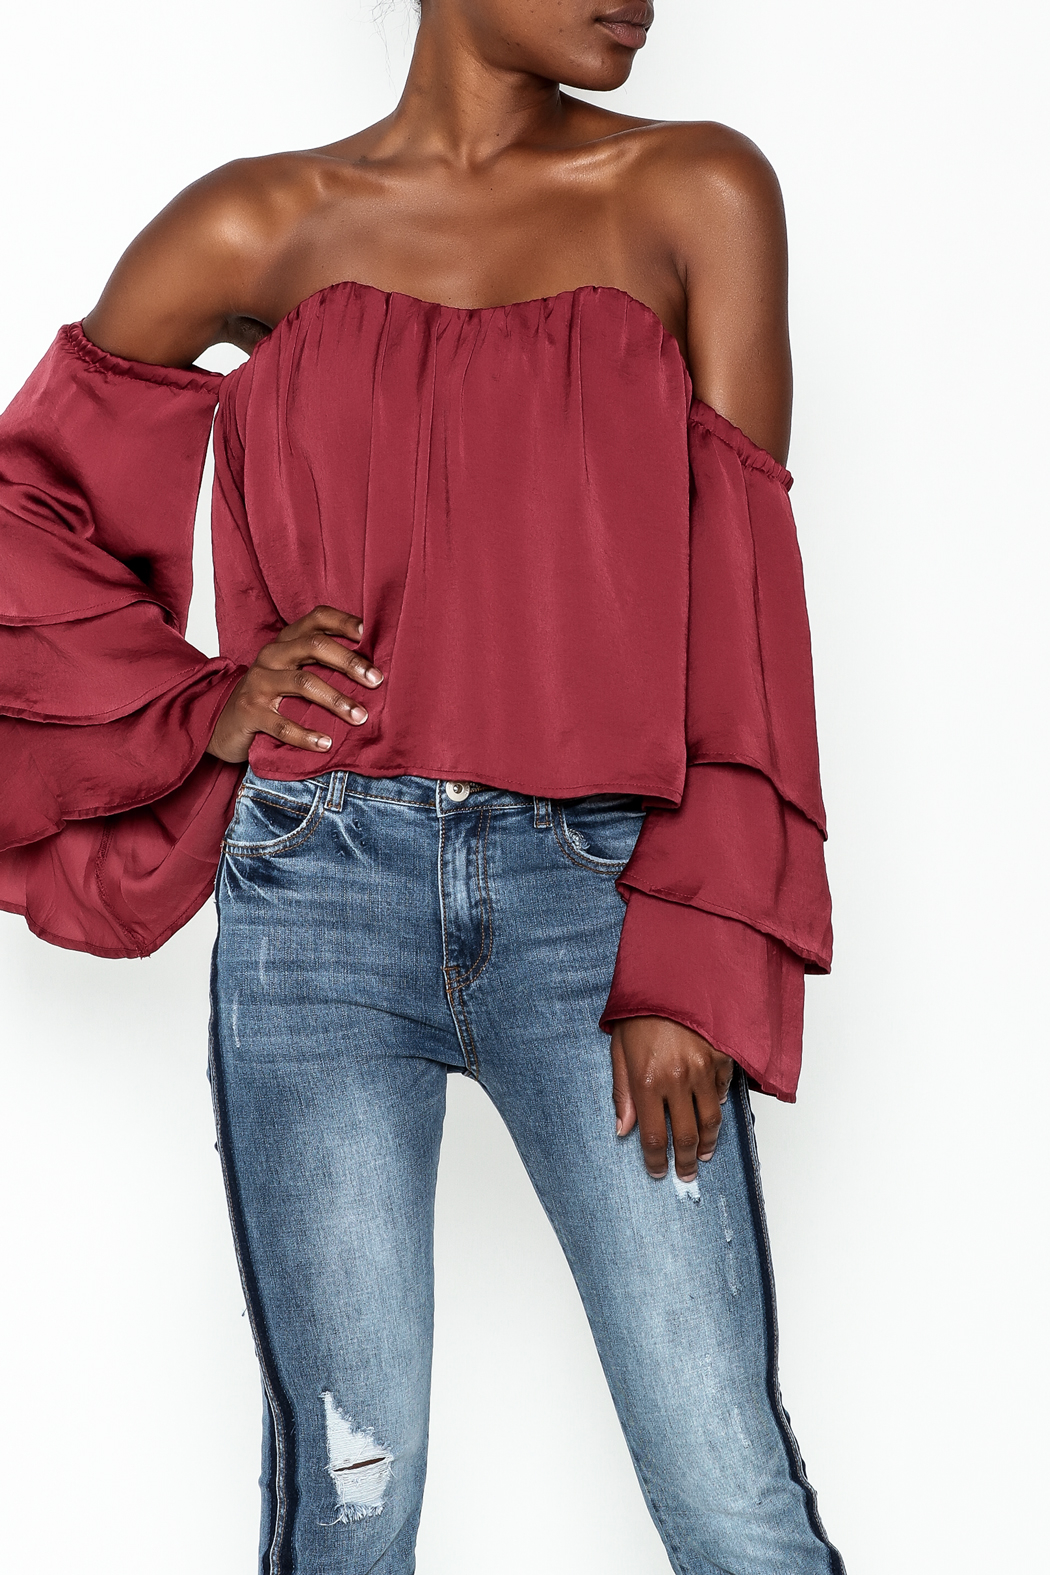 4Sienna Tiered Sleeve Satin Top - Main Image